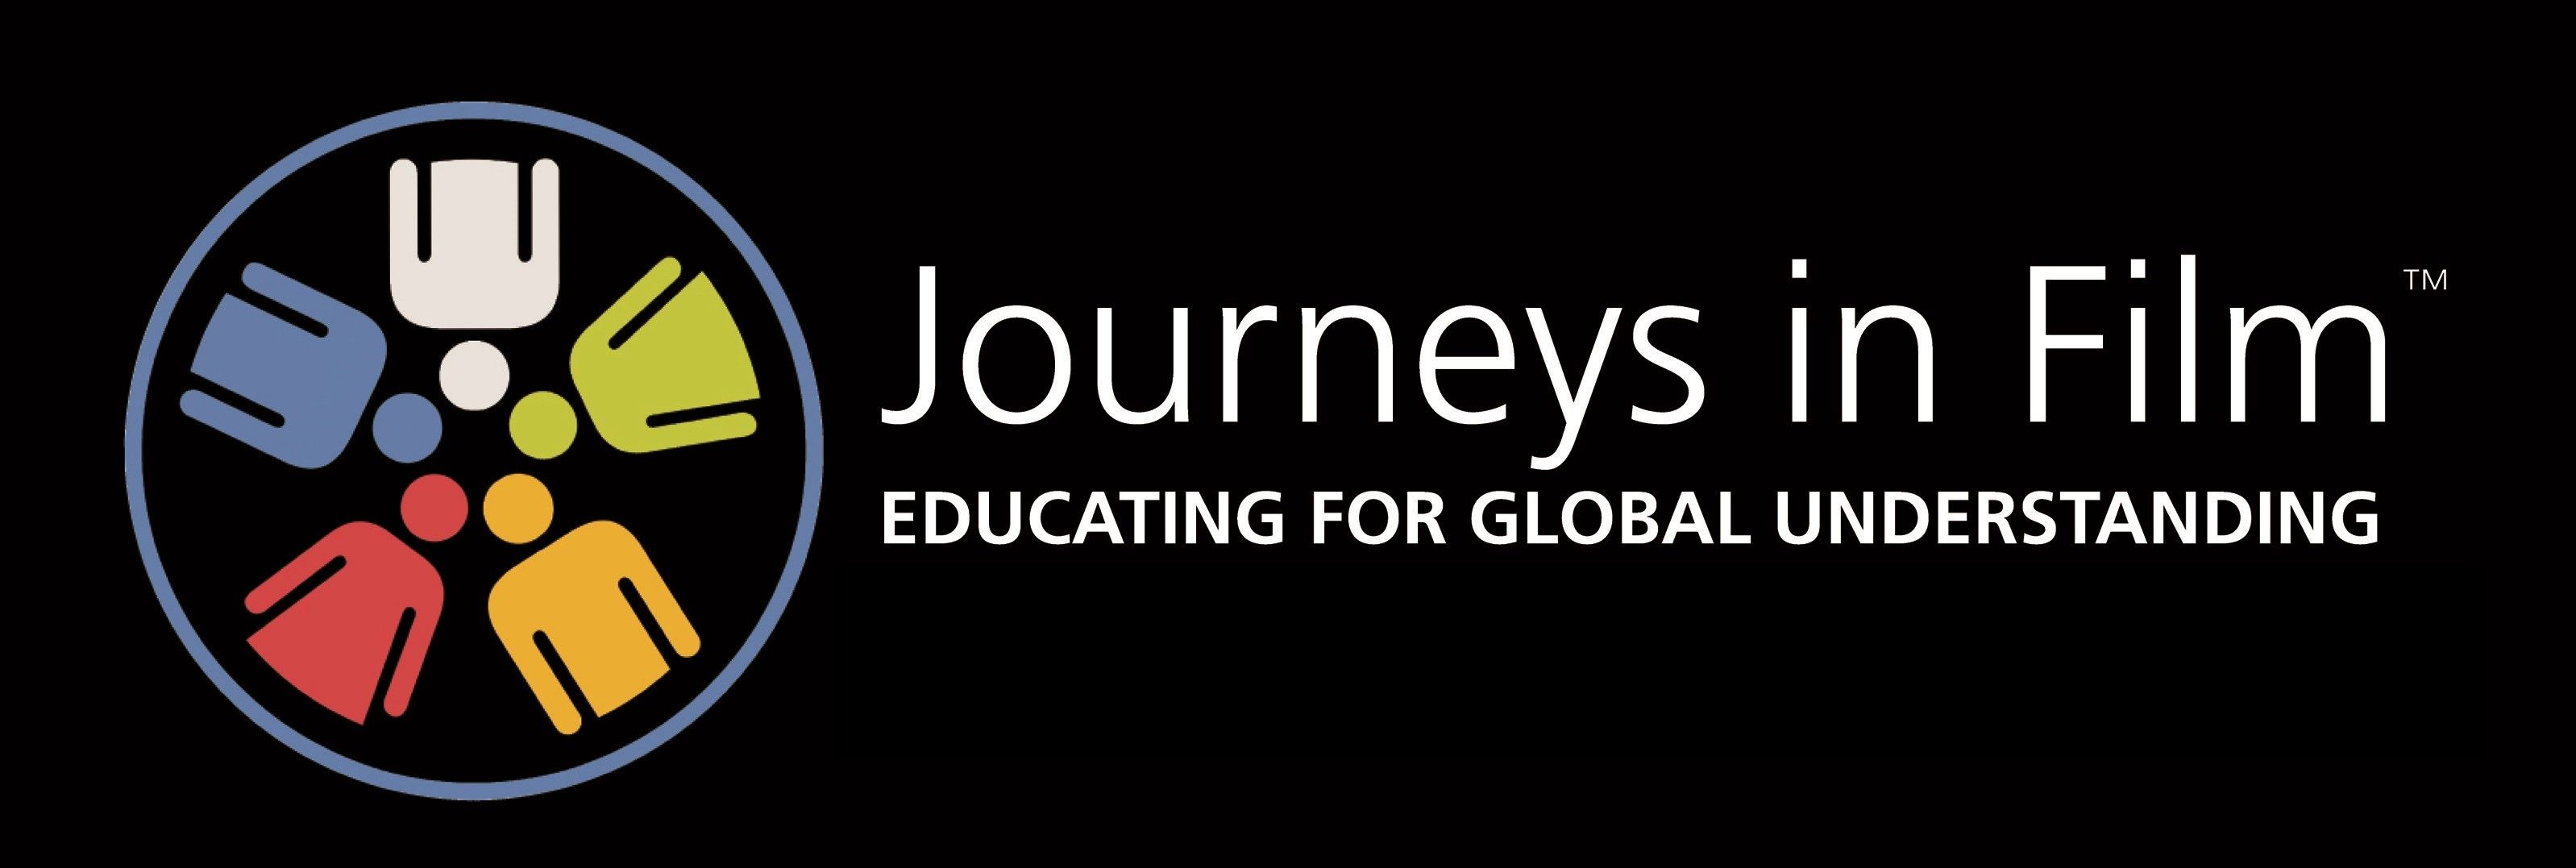 Who We Are Journeys In Film in 2020 Global education